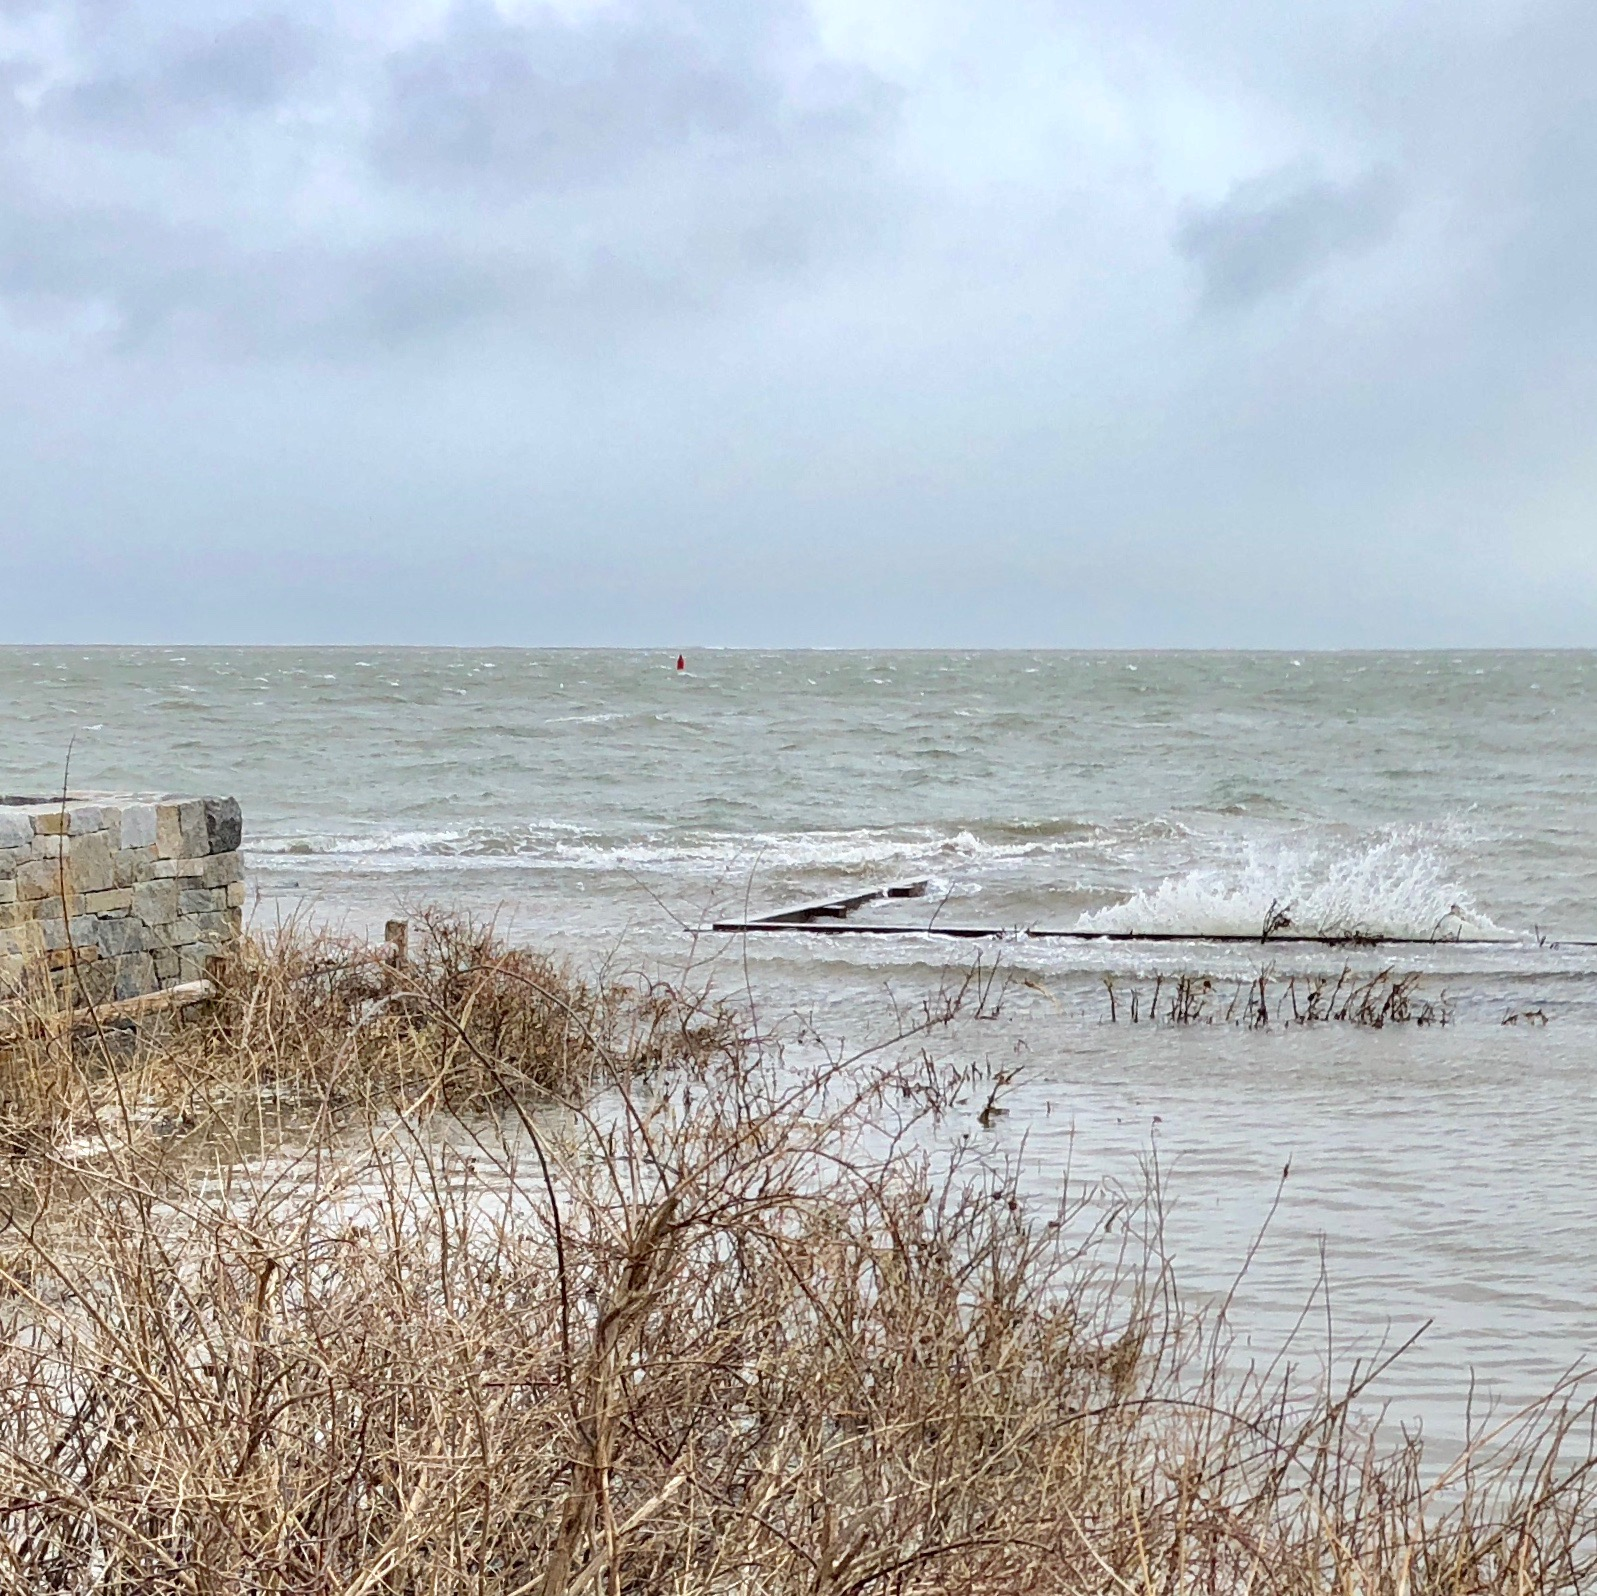 Our neighbor's beach in front at 42 Winsor Street. Tides are still running high, as is the wind.